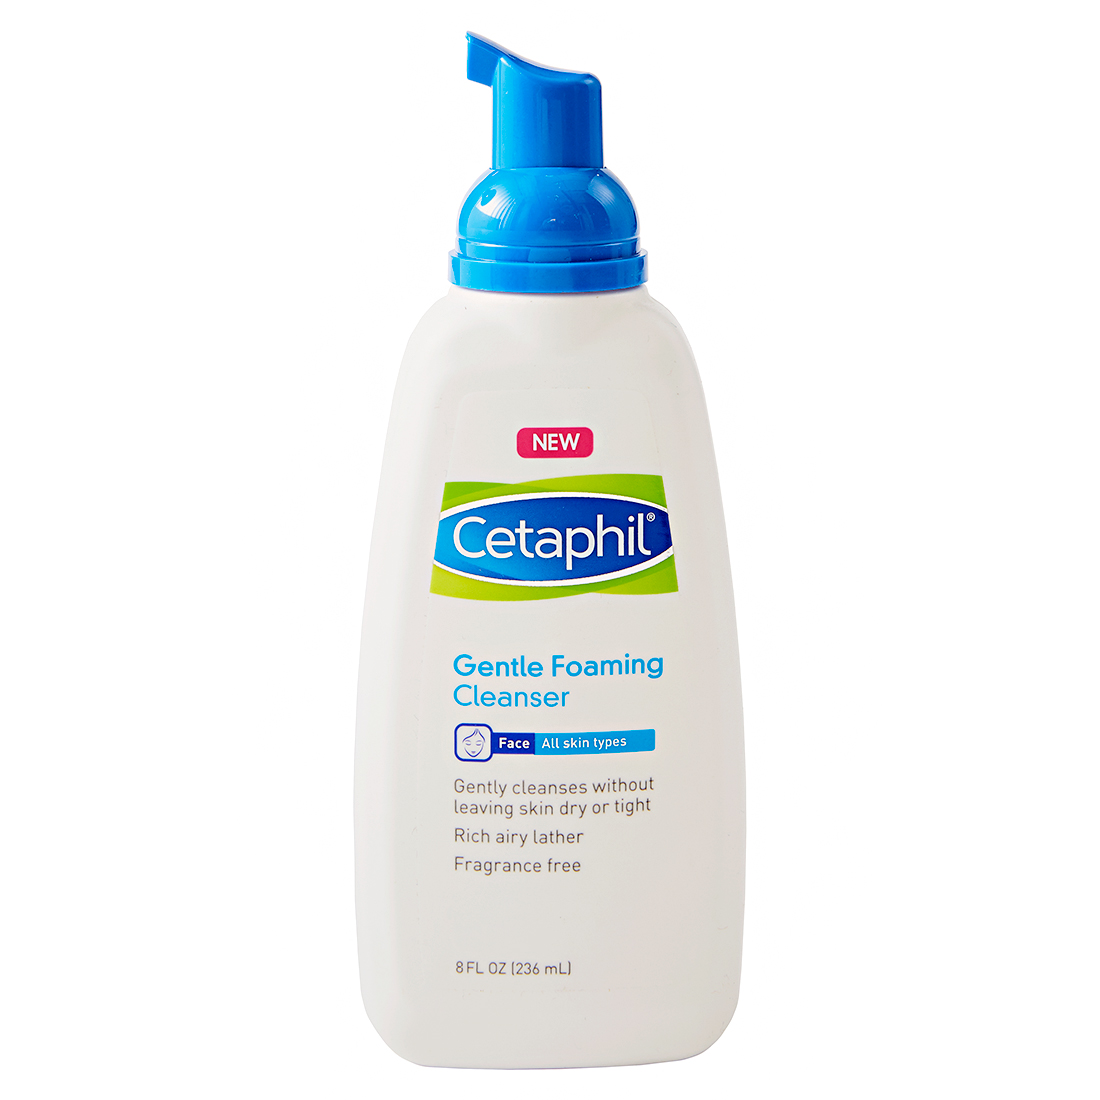 gentle foaming cleanser from cetaphil